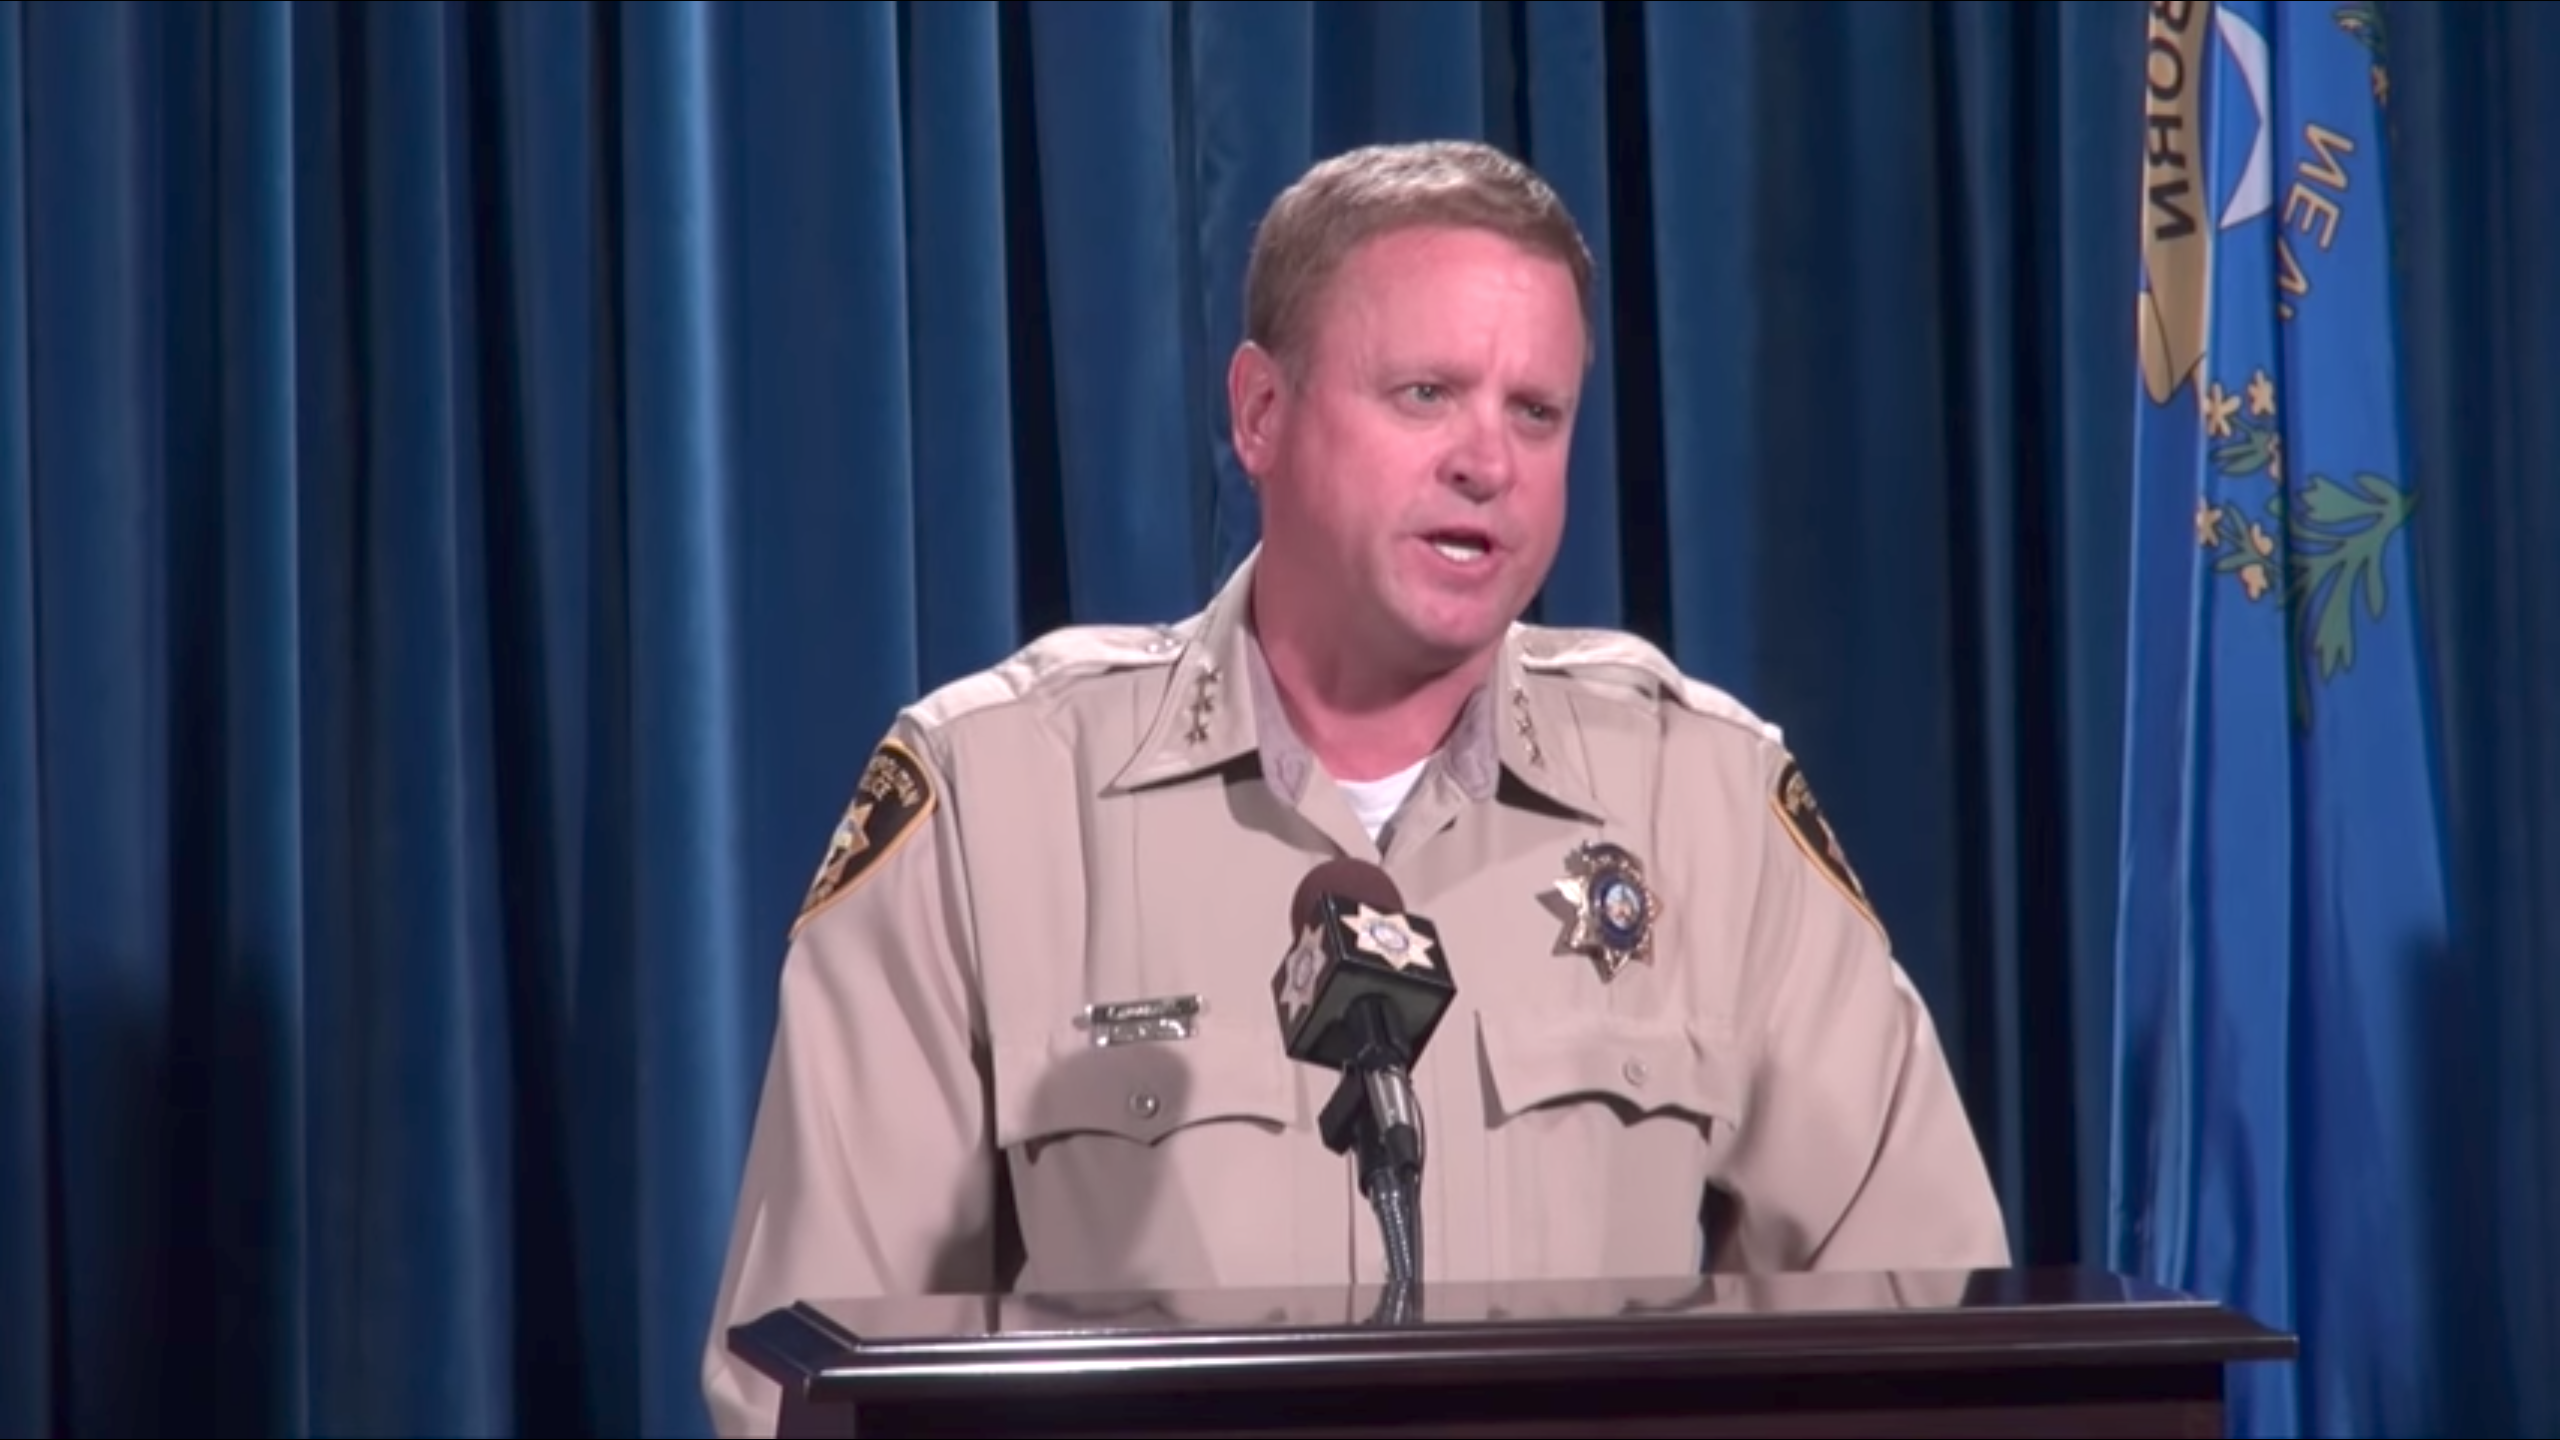 Las Vegas Metropolitan Police Department Undersheriff Kevin McMahill responded to Michael Bennett's tweet at a press conference on Sept. 6, 2017. (Screenshot/Storyful video)